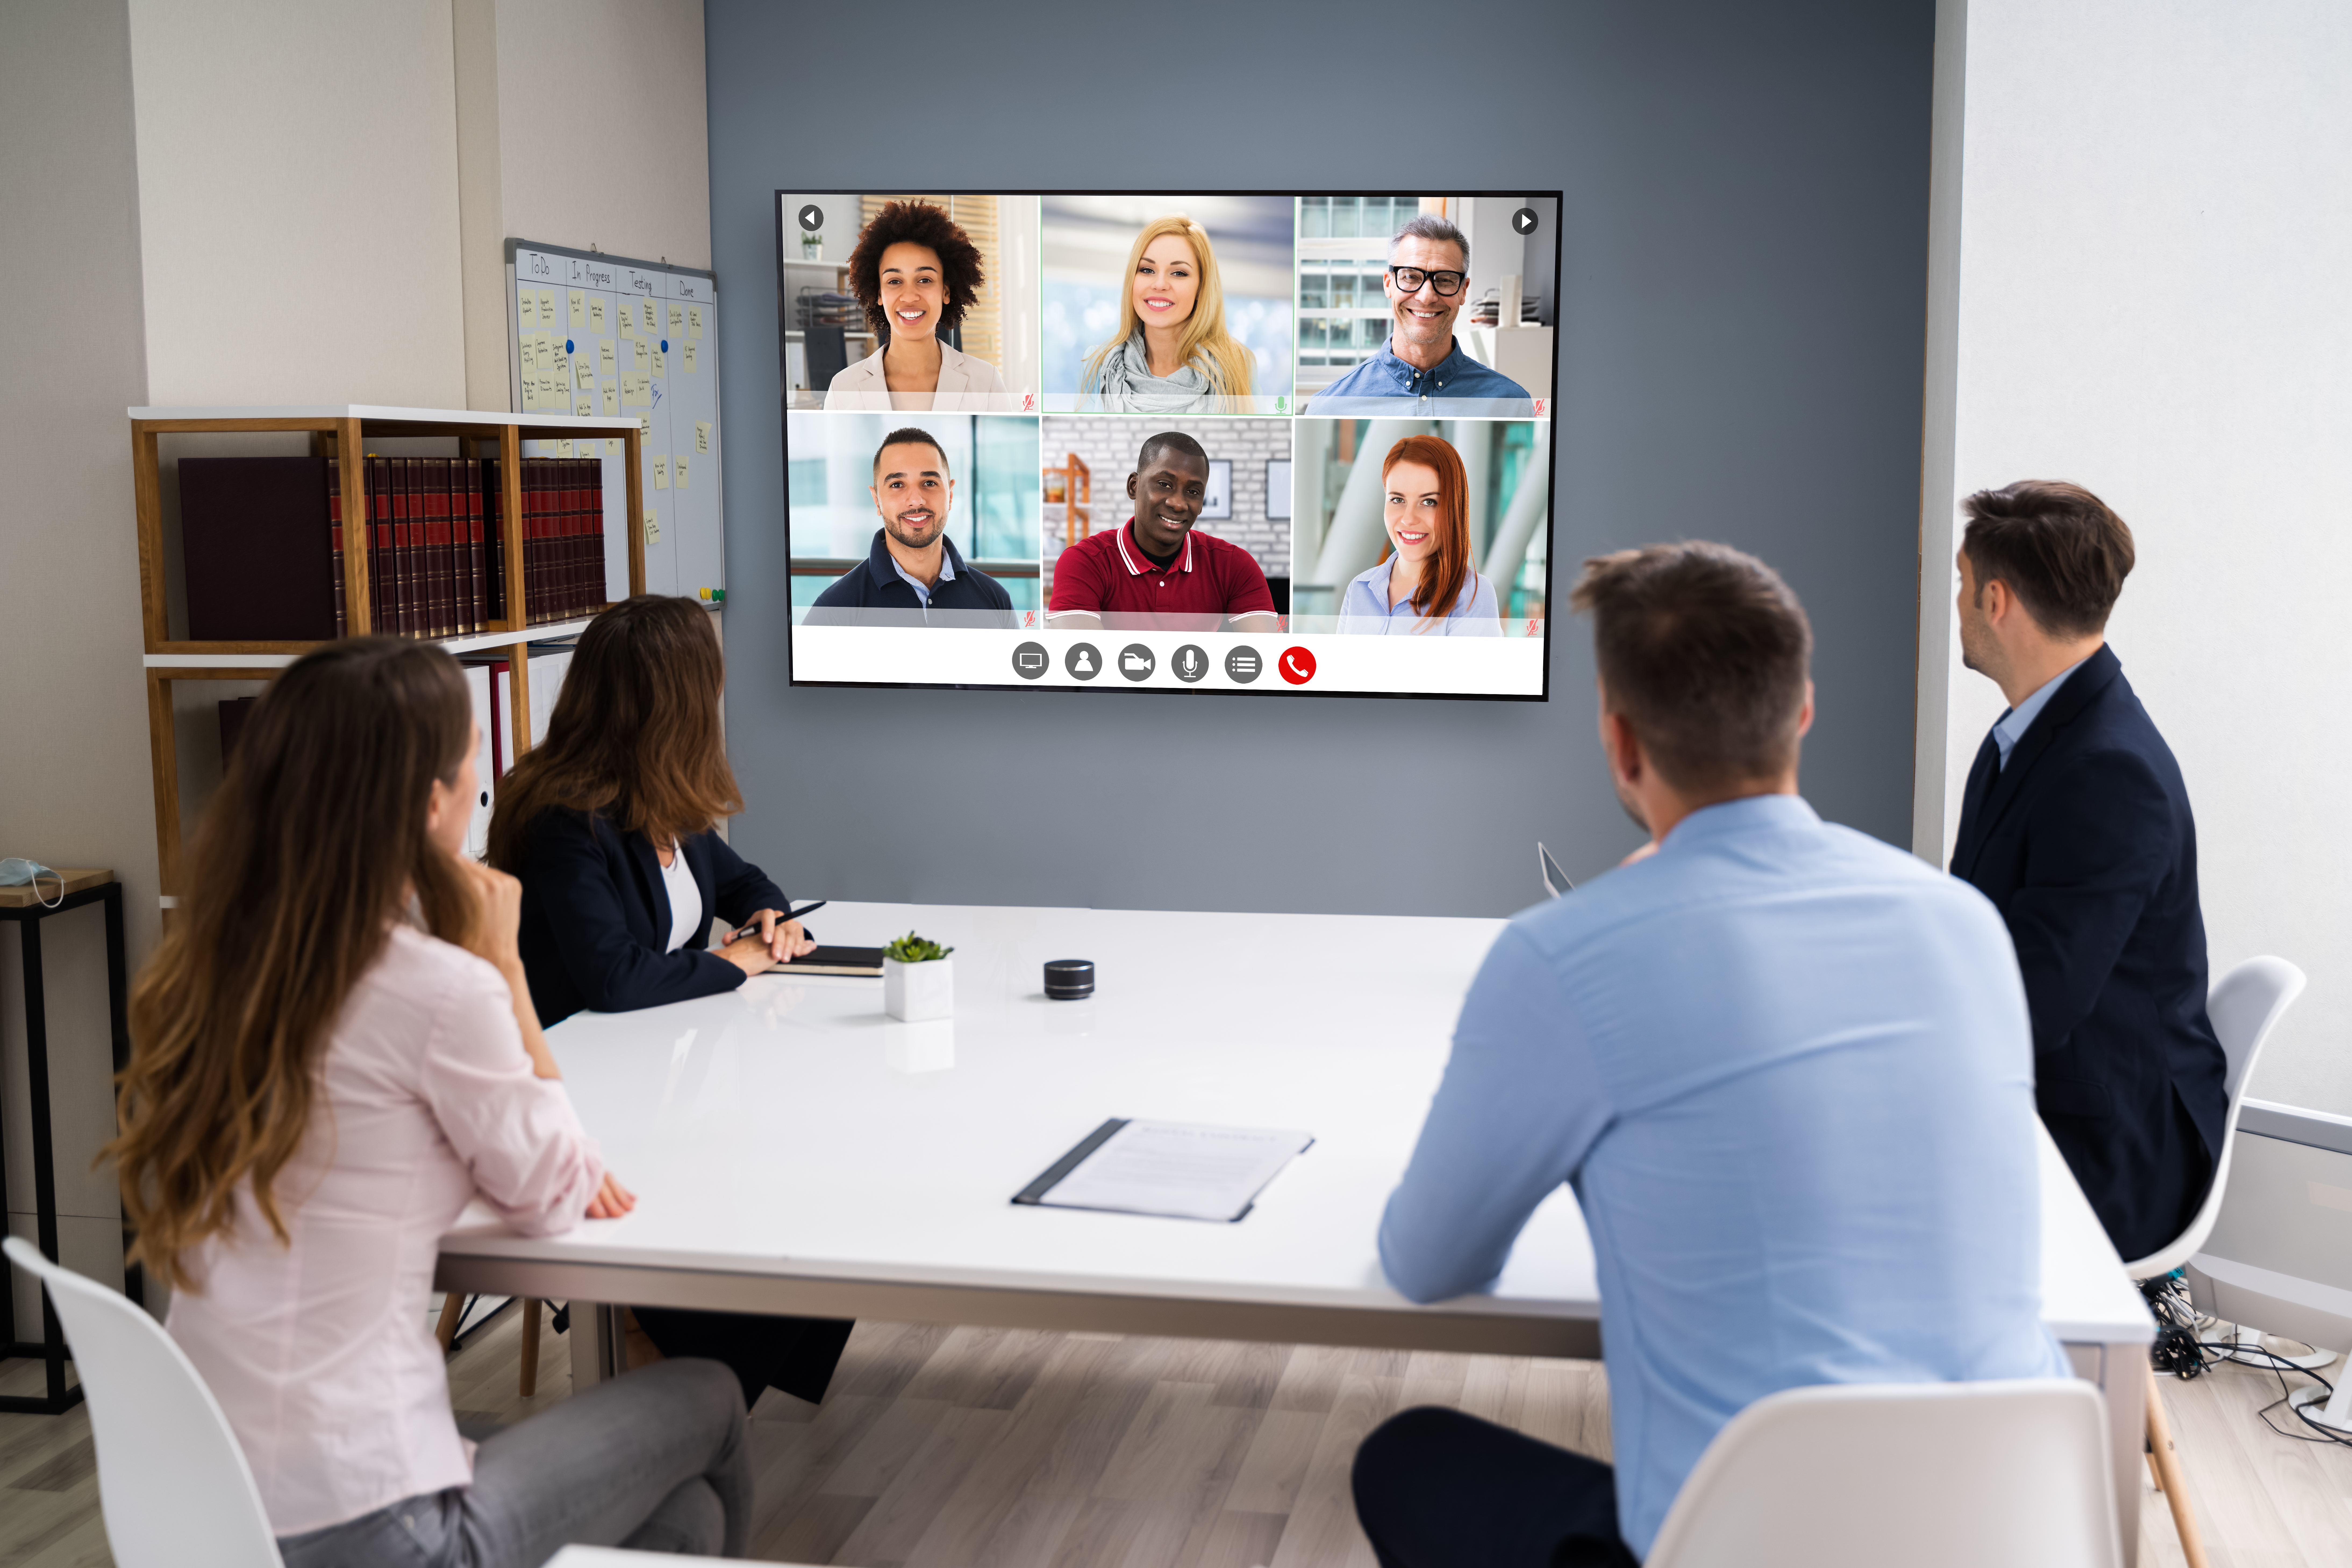 How to Host a BYOM Conference Call in a Meeting Room